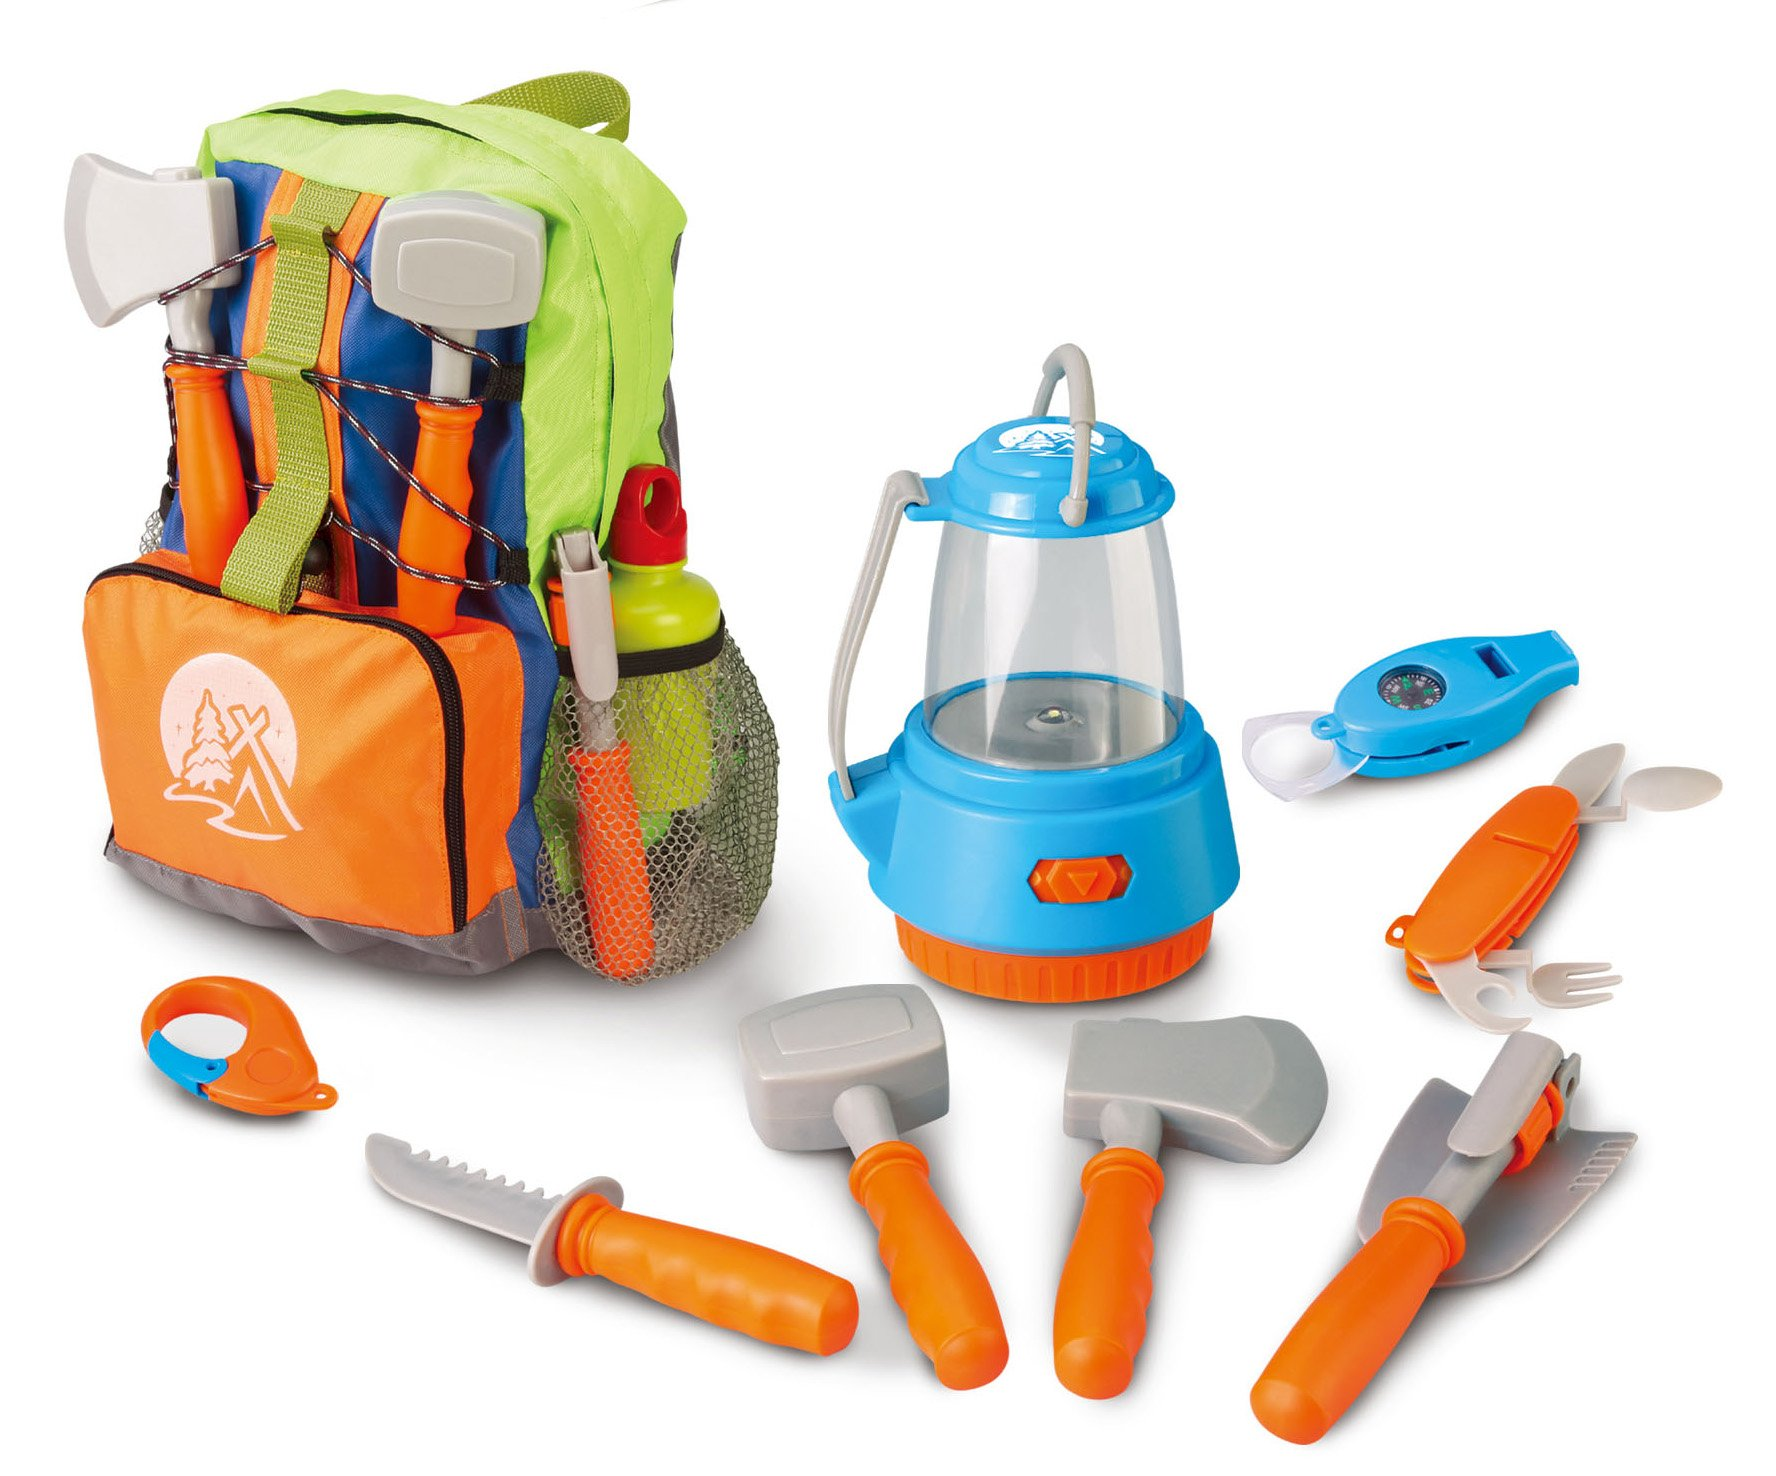 Berry Toys Little Explorer Camping Backpack Play Set (9-Piece)